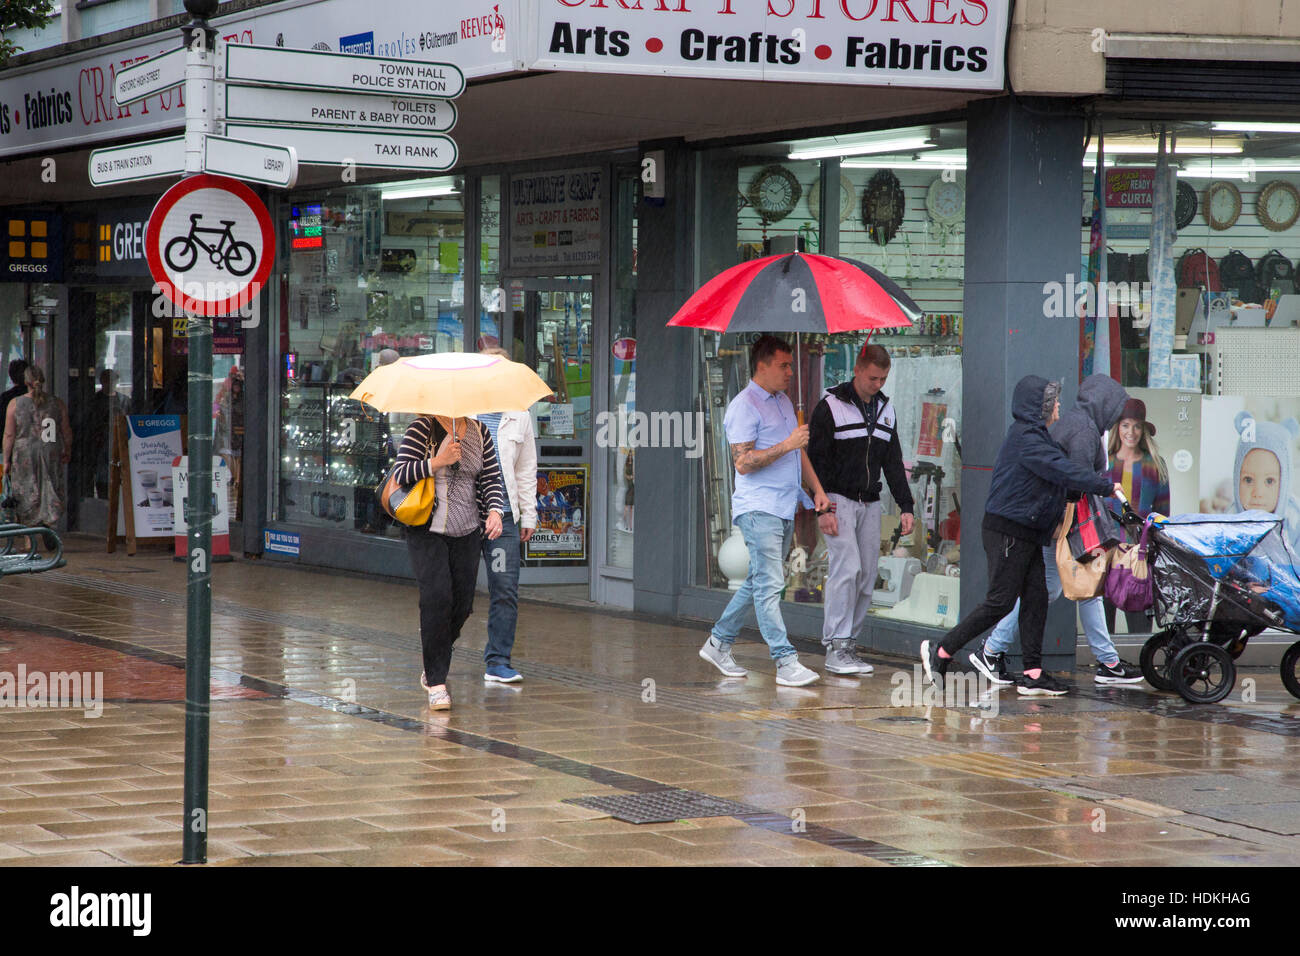 Pedestrians walk in a street in rainy weather. - Stock Image